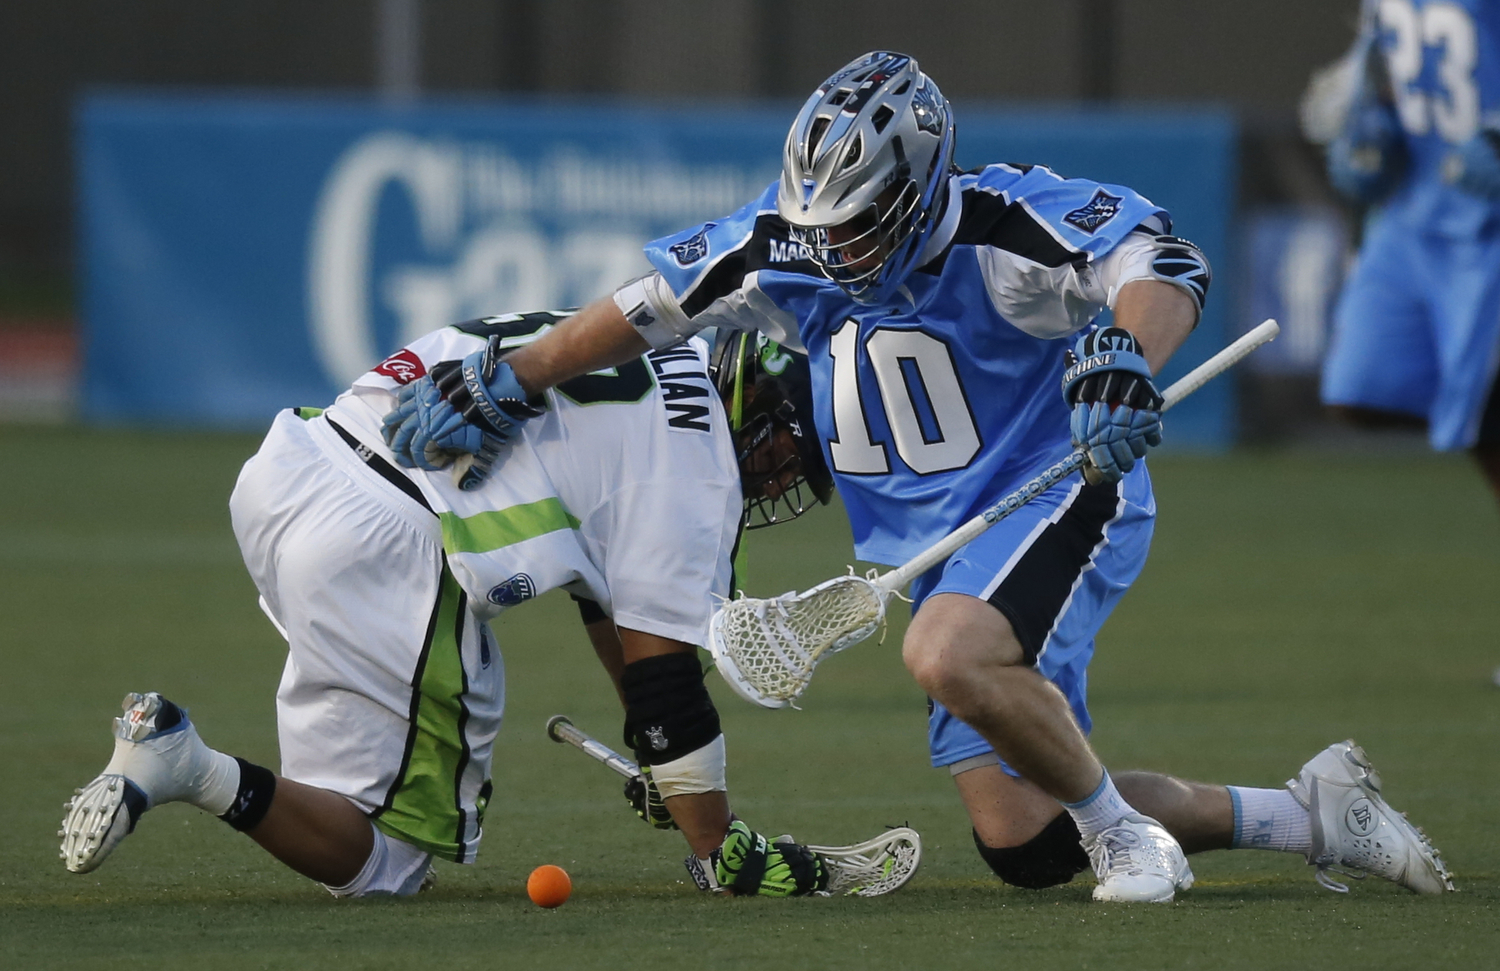 Ohio midfielder Eric O'Brien (10) takes a face-off against New York midfielder Greg Gurenlian (32) during the first quarter of the Major League Lacrosse match between the Ohio Machine and the New York Lizards at Selby Stadium on the campus of Ohio Wesleyan University in Delaware, Ohio, on Saturday, May 17, 2014. (Columbus Dispatch/Sam Greene